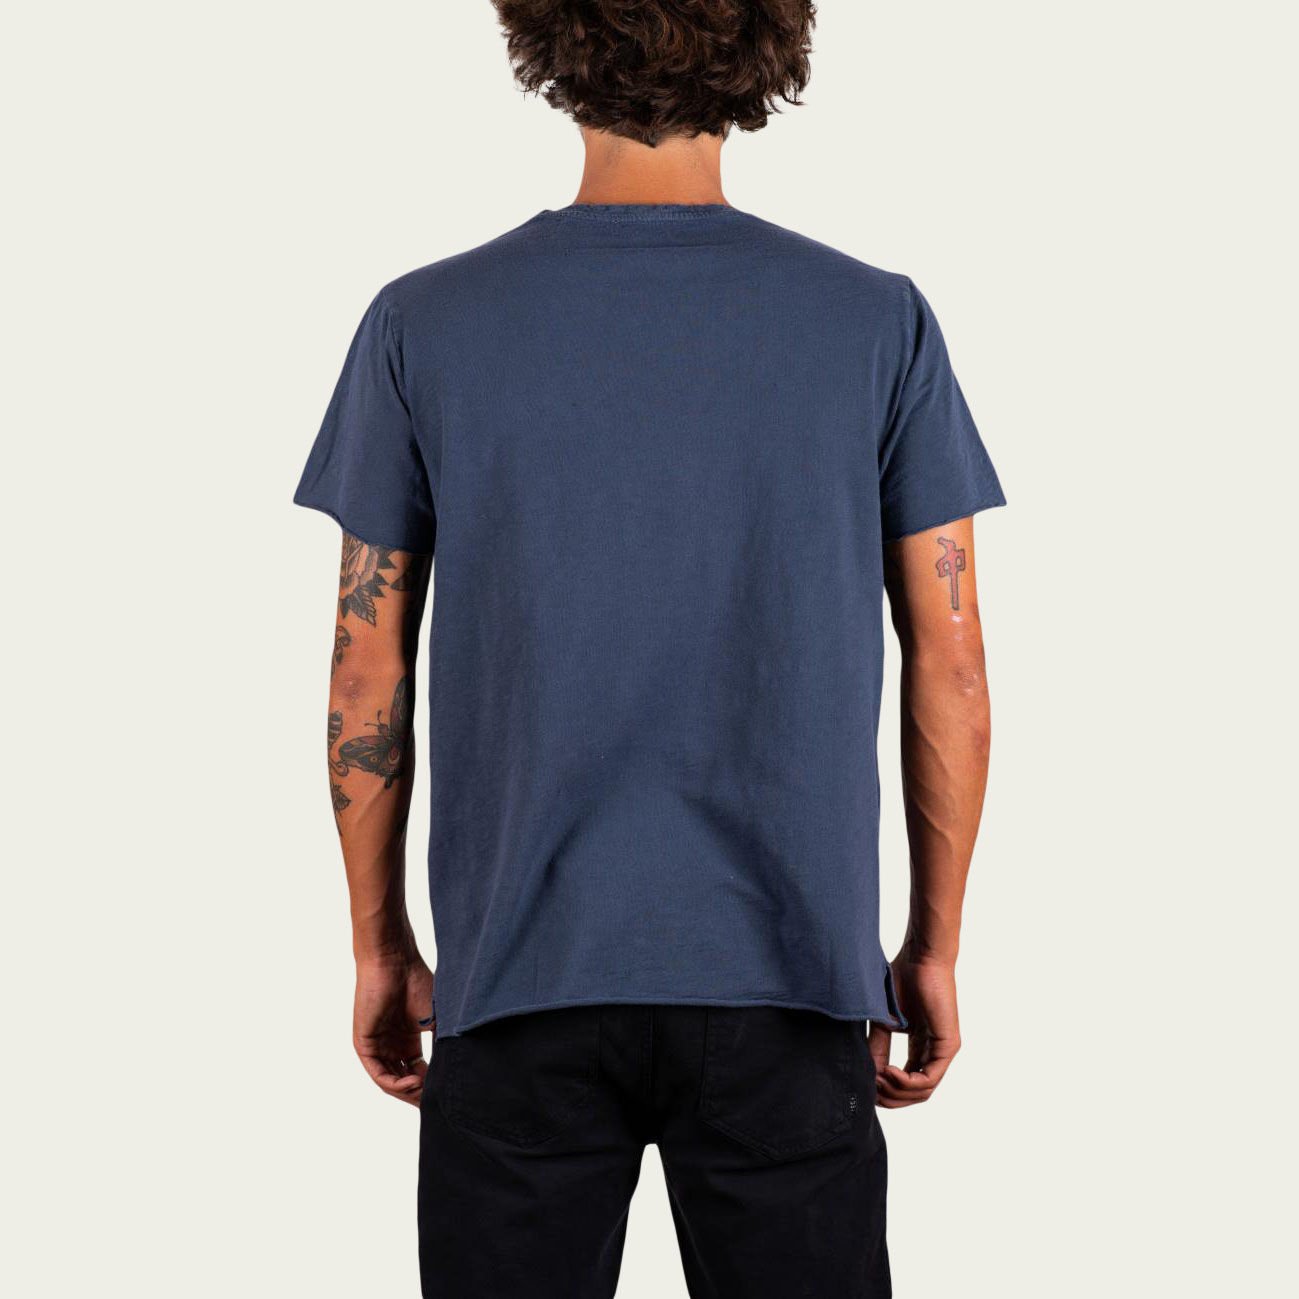 Blue and Sand Smiley Tee-shirt   Bombinate